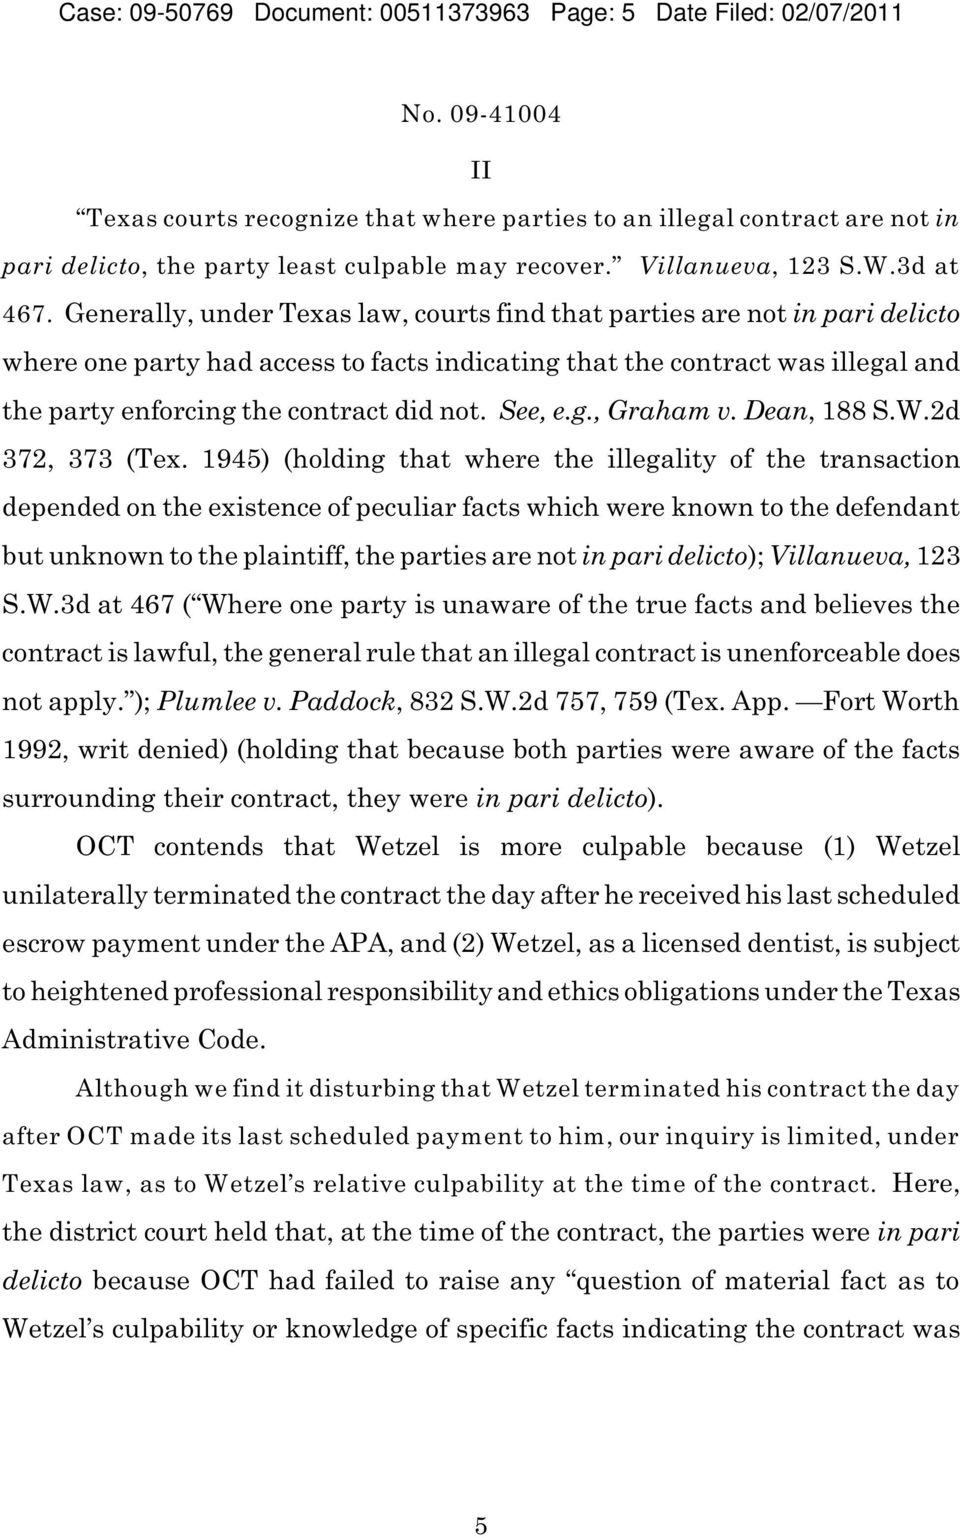 Generally, under Texas law, courts find that parties are not in pari delicto where one party had access to facts indicating that the contract was illegal and the party enforcing the contract did not.